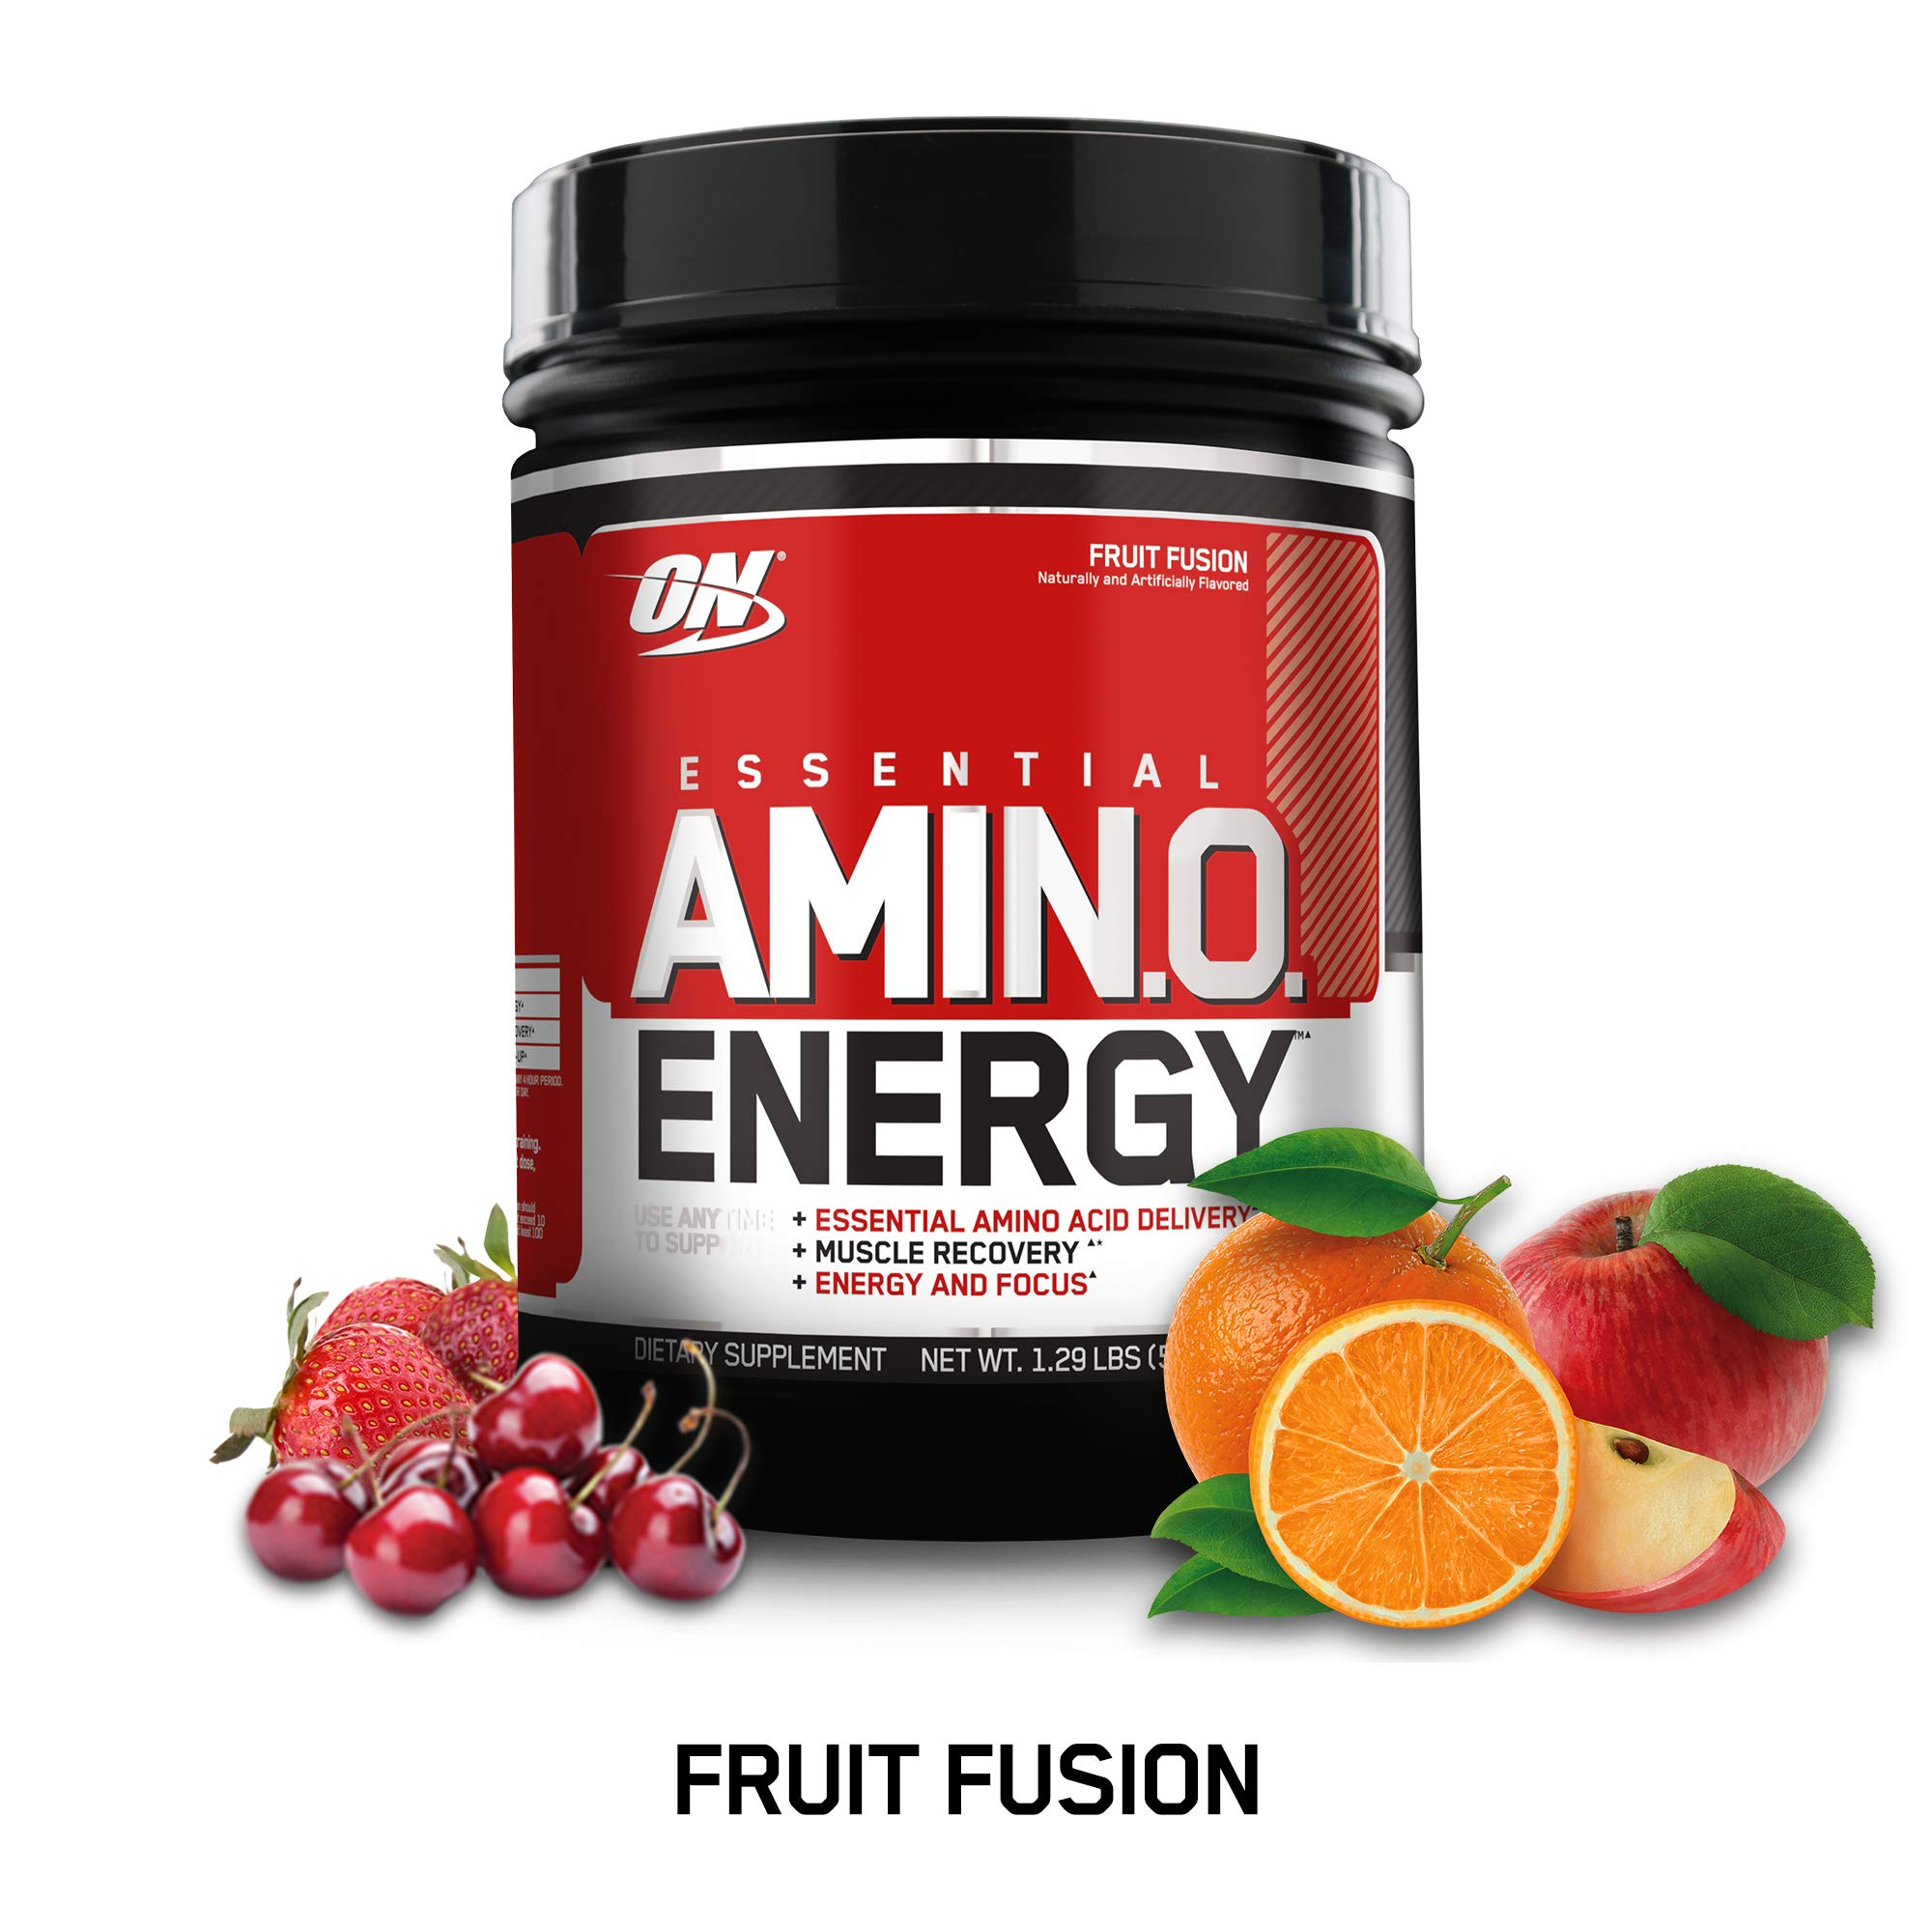 OPTIMUM NUTRITION ESSENTIAL AMINO ENERGY, Fruit Fusion, Keto Friendly Preworkout and Essential Amino Acids with Green Tea and Green Coffee Extract, 20.64 Ounce (Pack of 1) by Optimum Nutrition